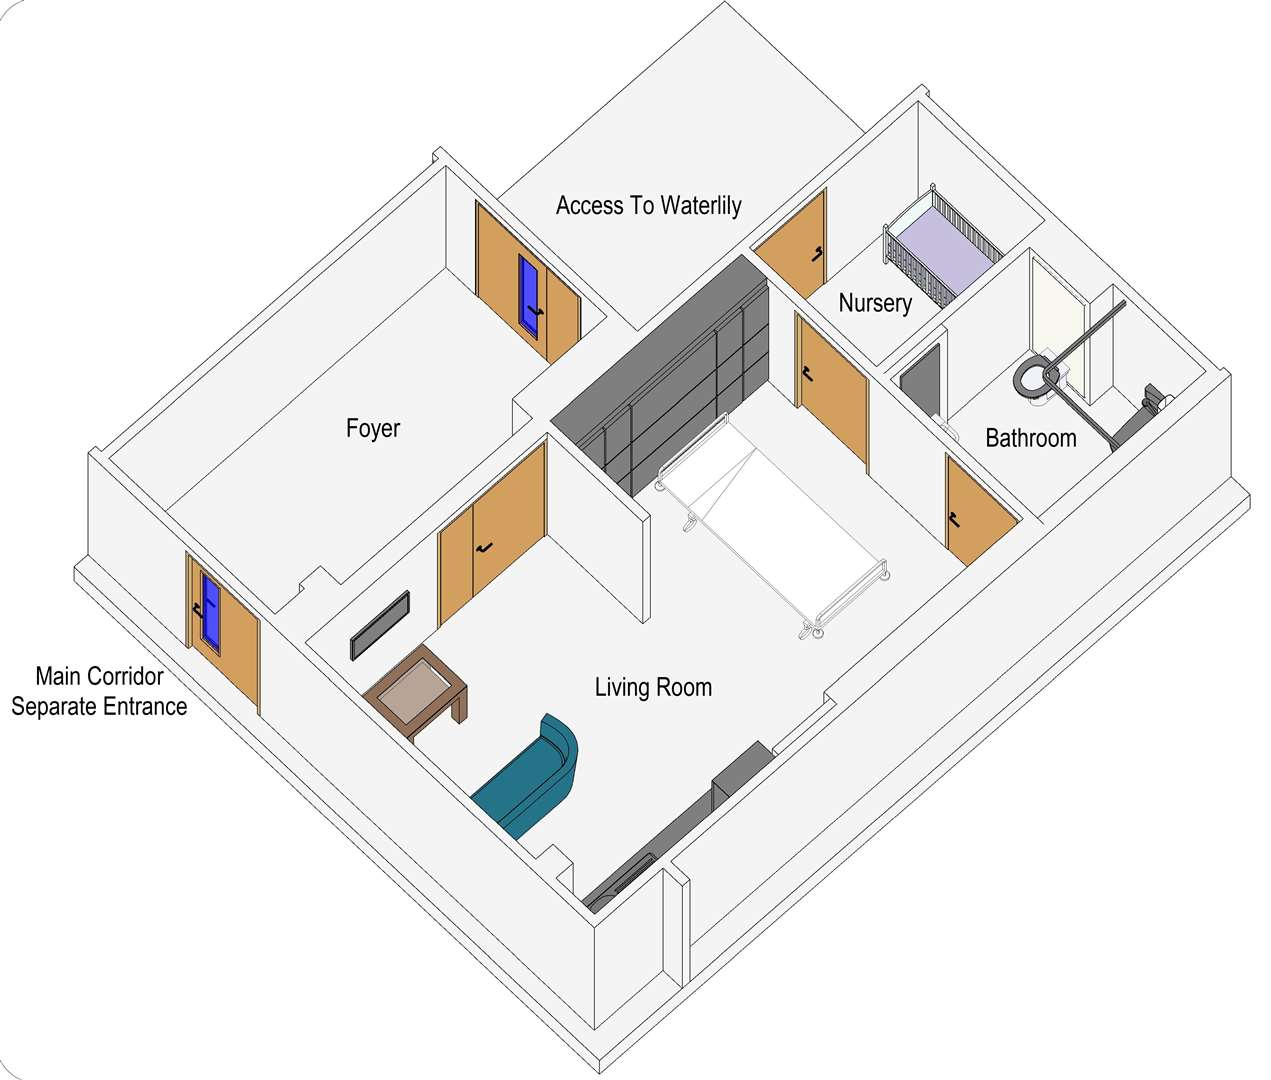 A 3D drawing of what the Maternity Bereavement Suite at the QEH could look like